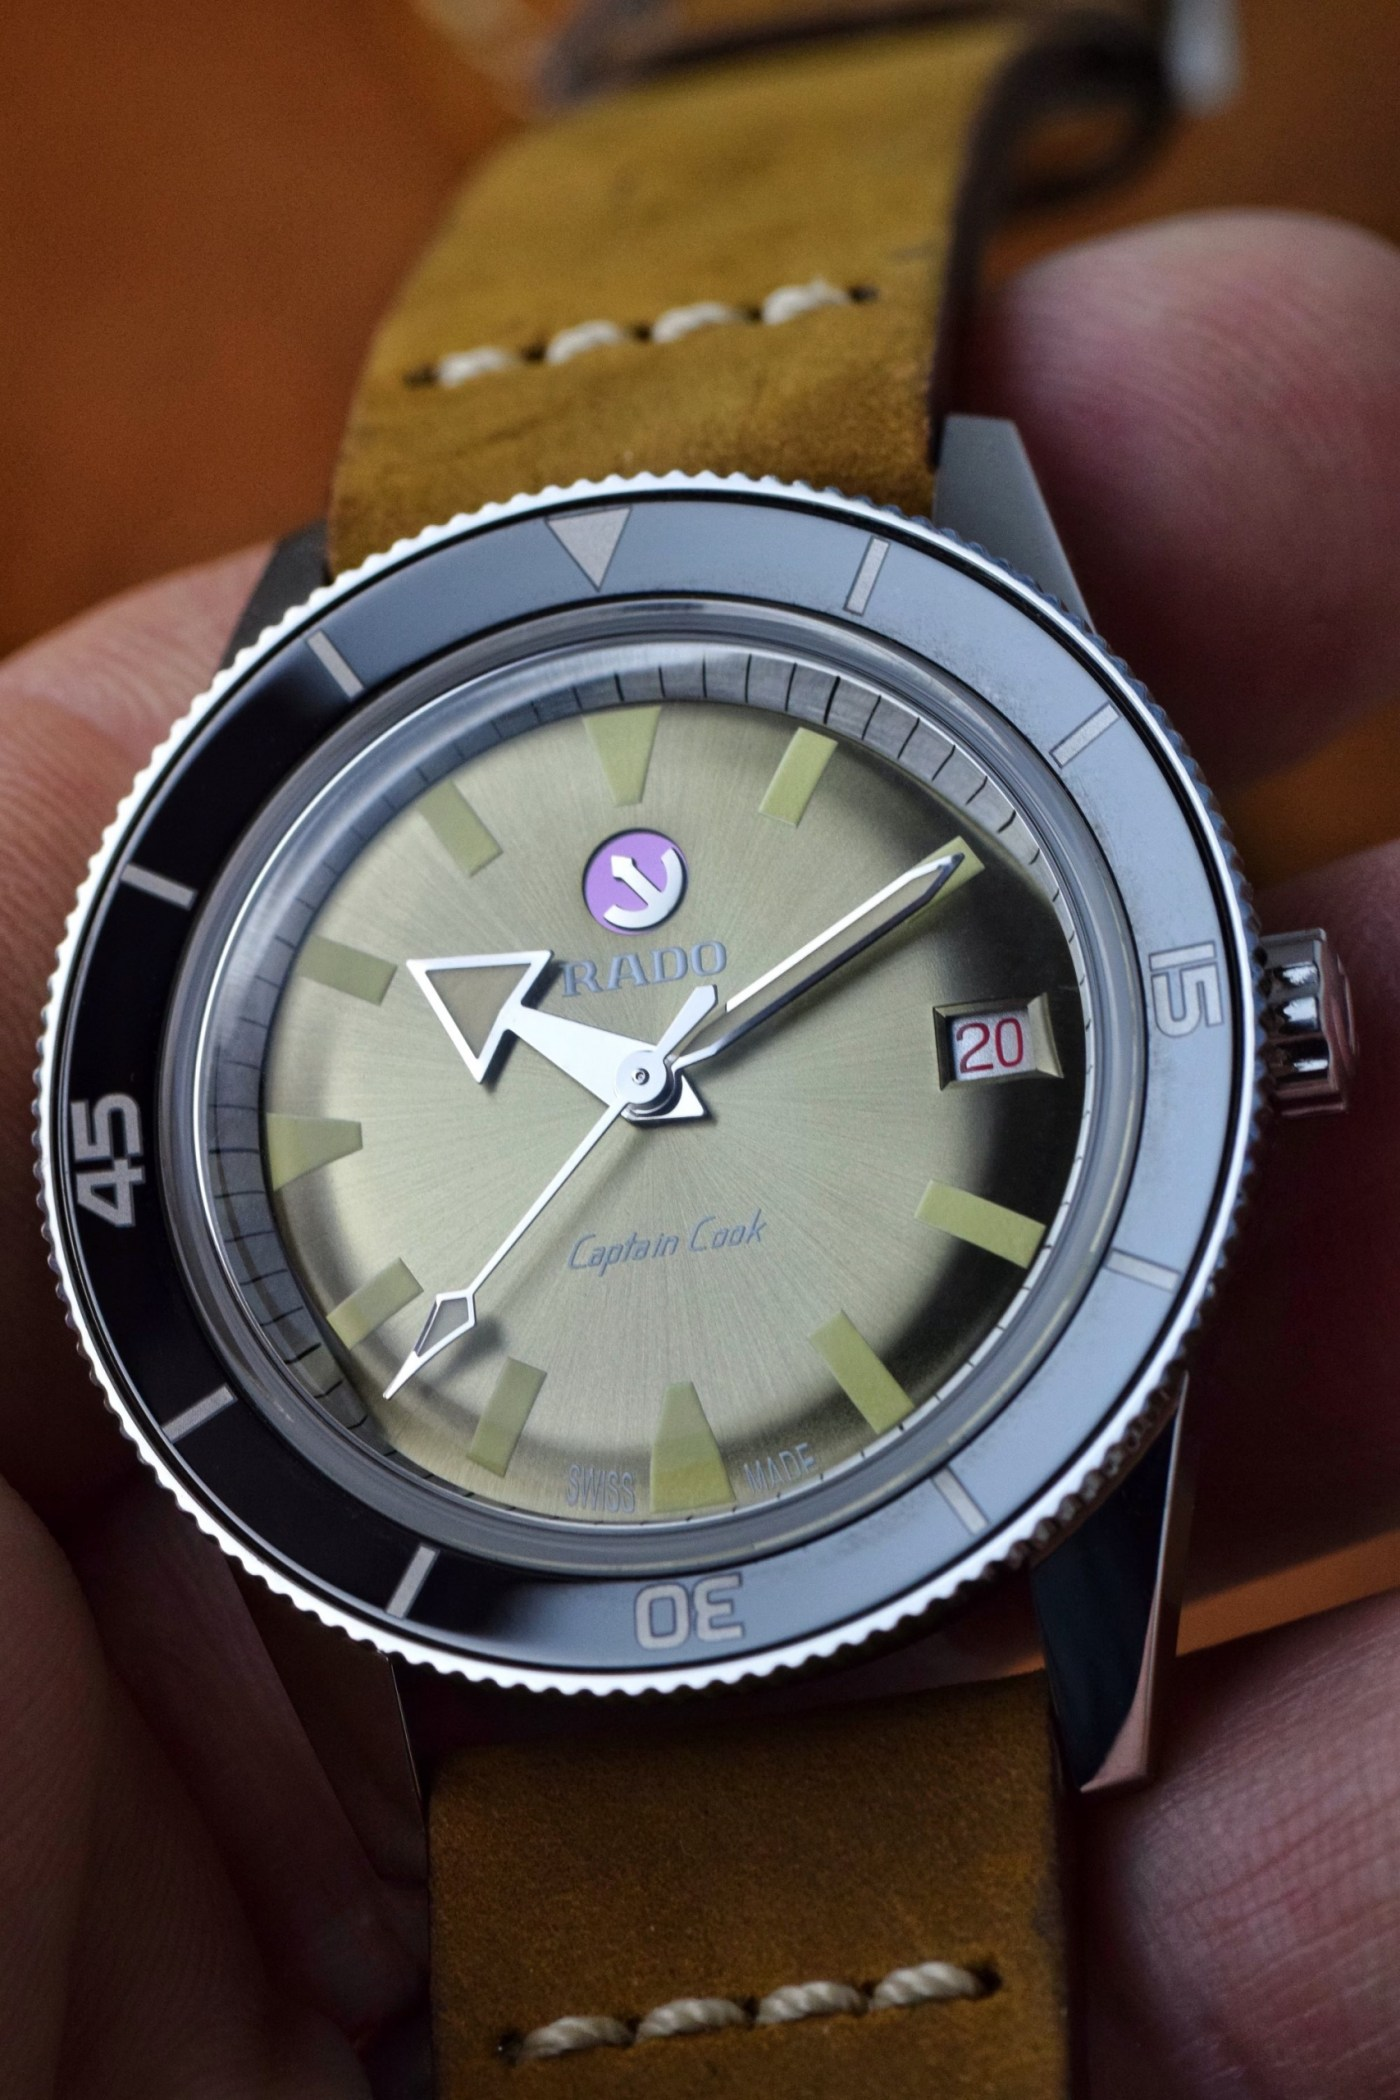 Rado Captain Cook Automatic hands-on